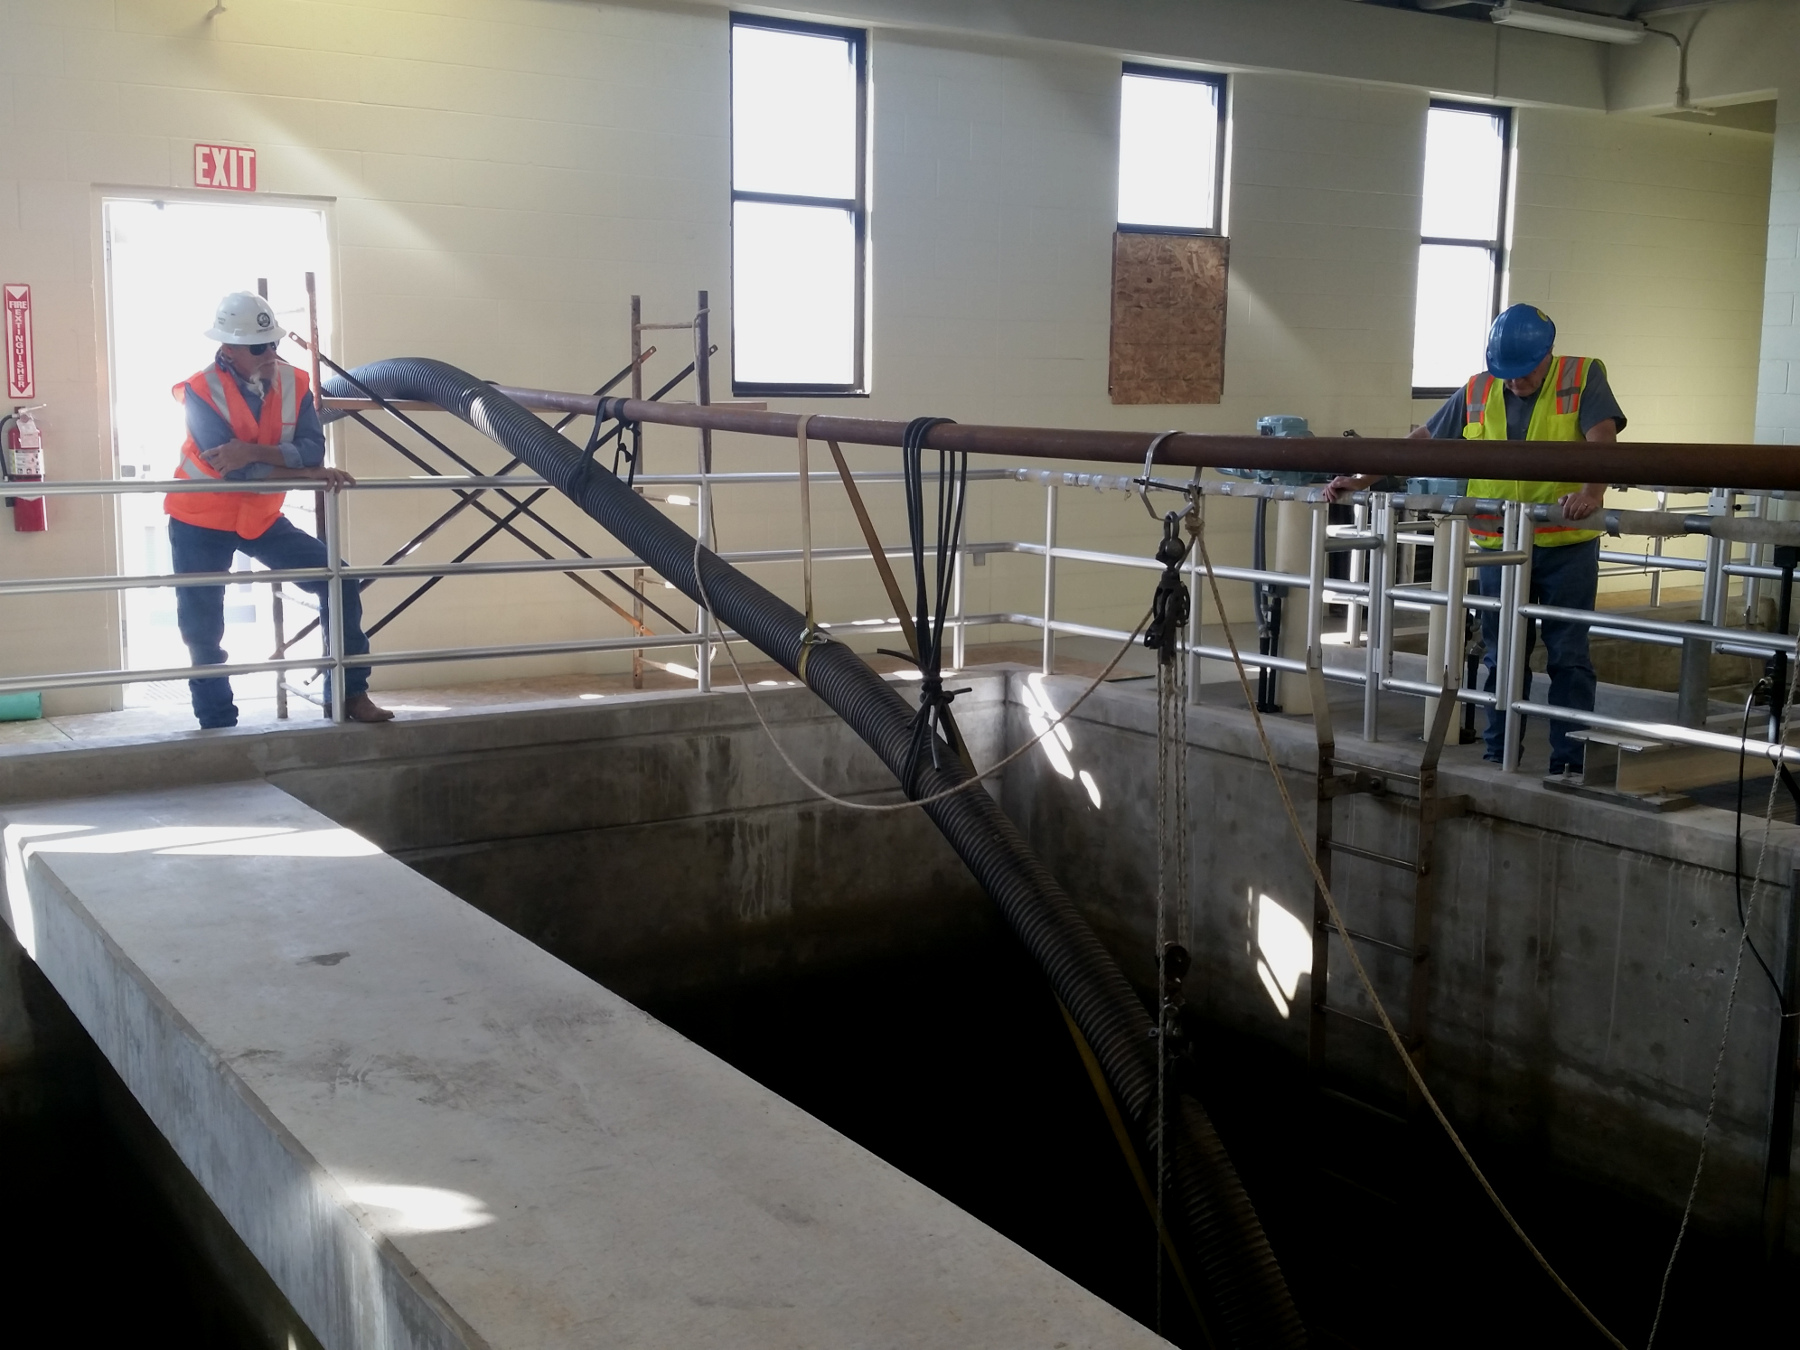 Workers complete filter expansion at Quail Creek Water Treatment Plant, Washington County, Utah, May 11, 2015 | Photo by Julie Applegate, St. George News